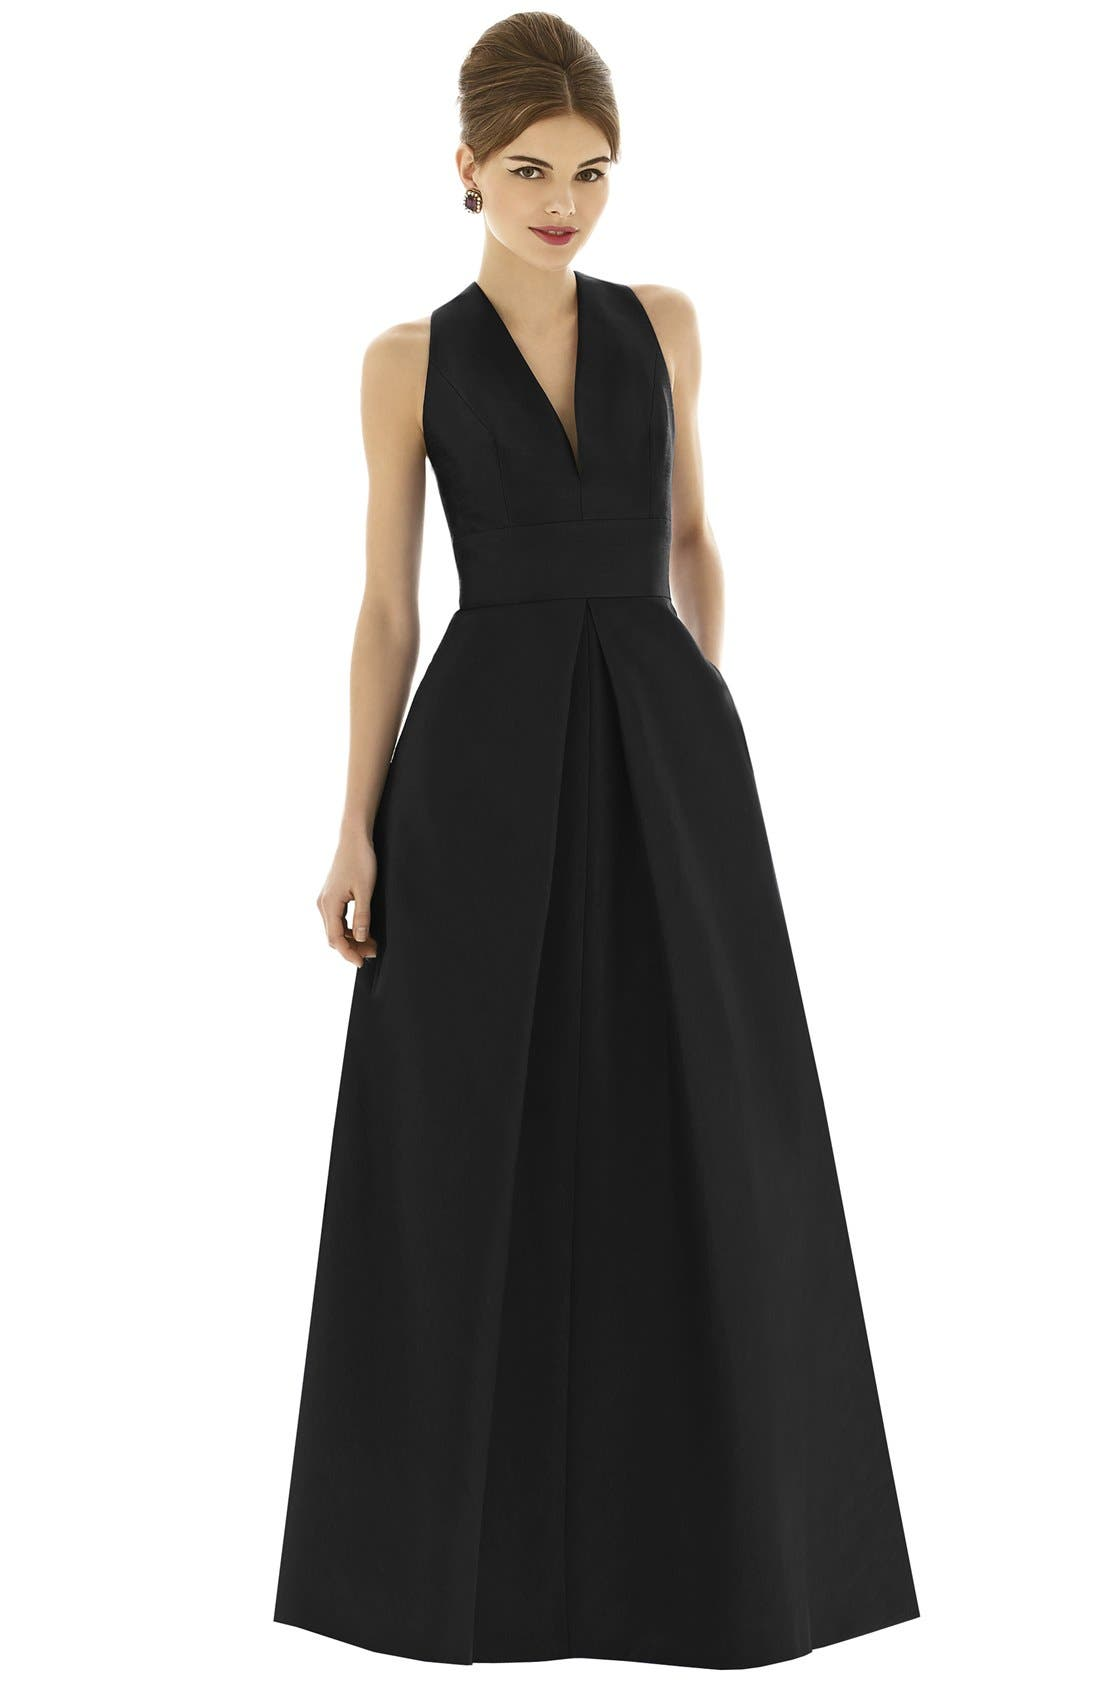 1960s – 70s Cocktail, Party, Prom, Evening Dresses Womens Alfred Sung Dupioni A-Line Gown Size 14 - Black $242.00 AT vintagedancer.com